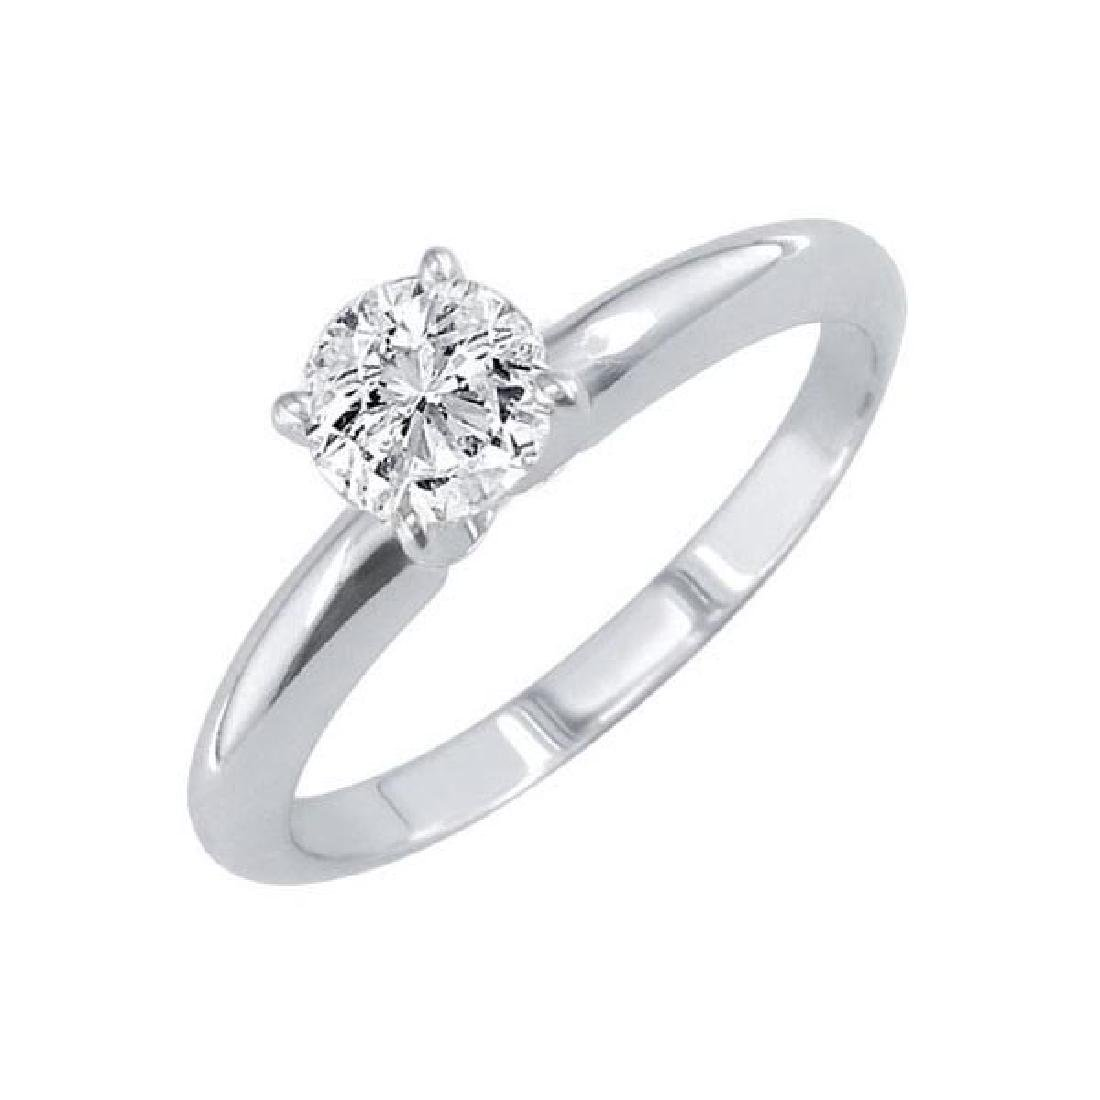 Certified 0.64 CTW Round Diamond Solitaire 14k Ring I/S